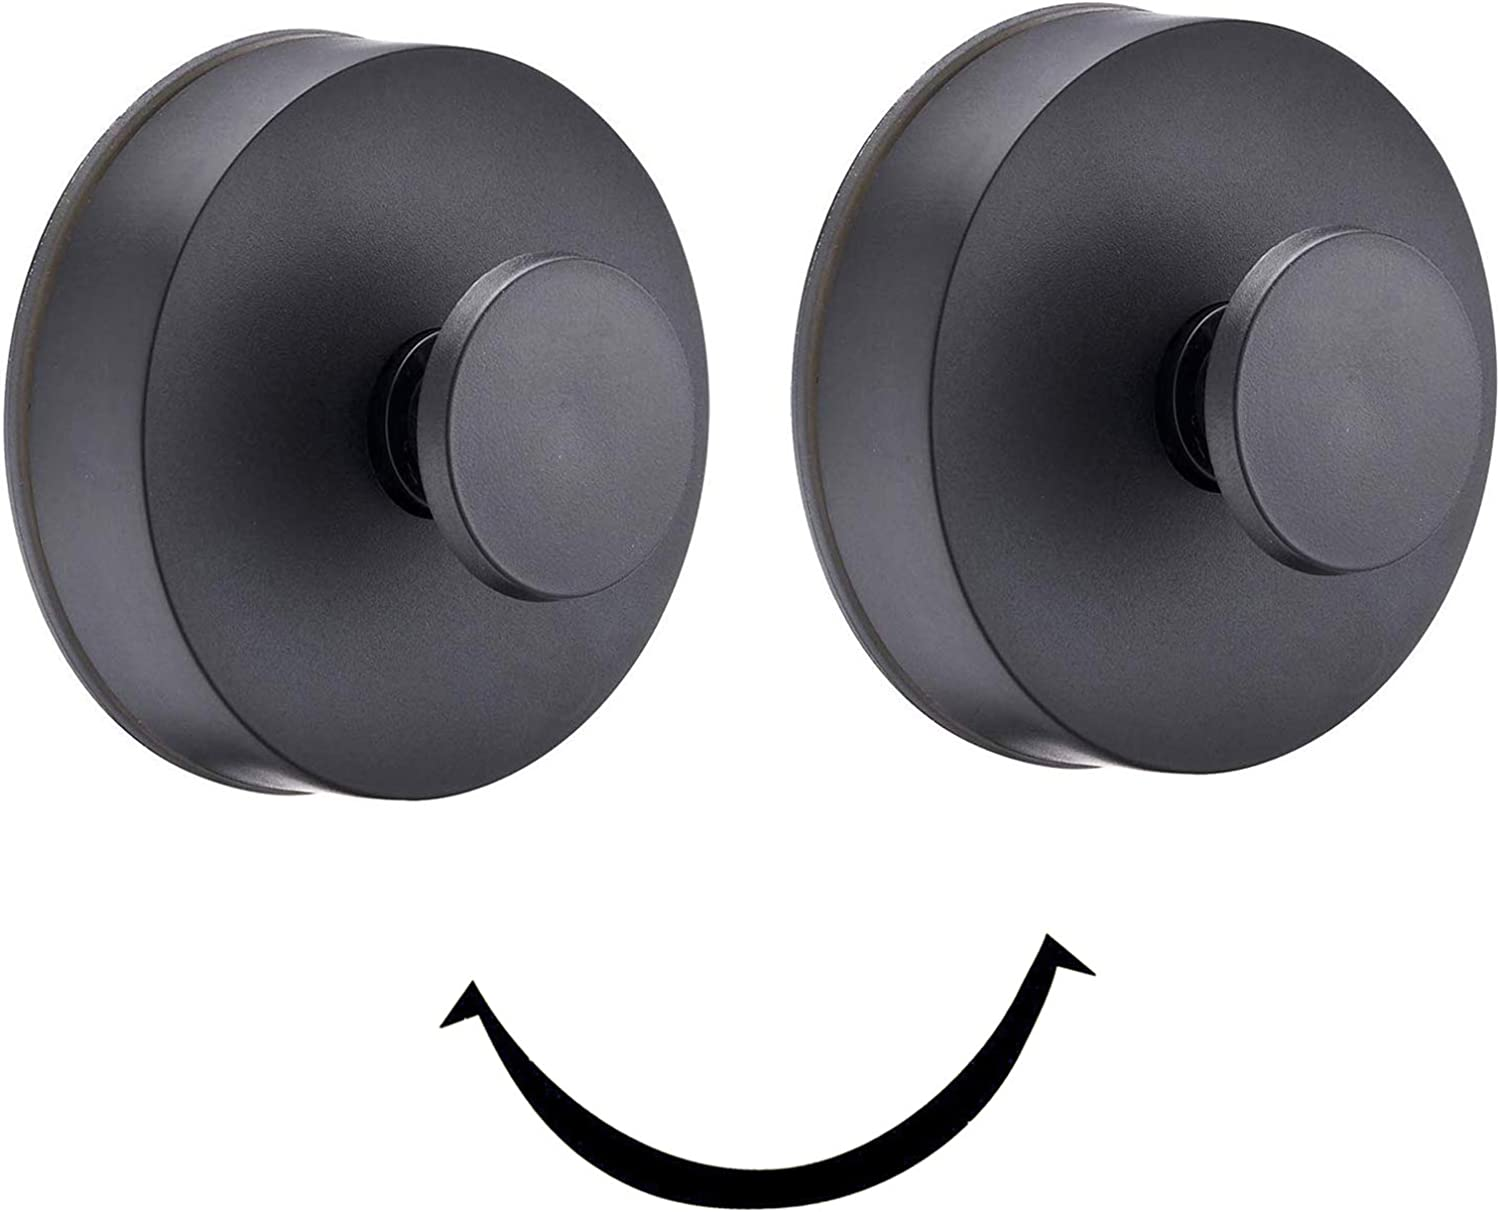 Towel Hooks, Suction Cup Coat/Robe Clothes Hooks,Plastic Wall Hook Removable for Bathroom, Kitchen, Bedroom, Restroom, Hotel, Brushed Nickel and Wall Mounted 2 Pack (Black)